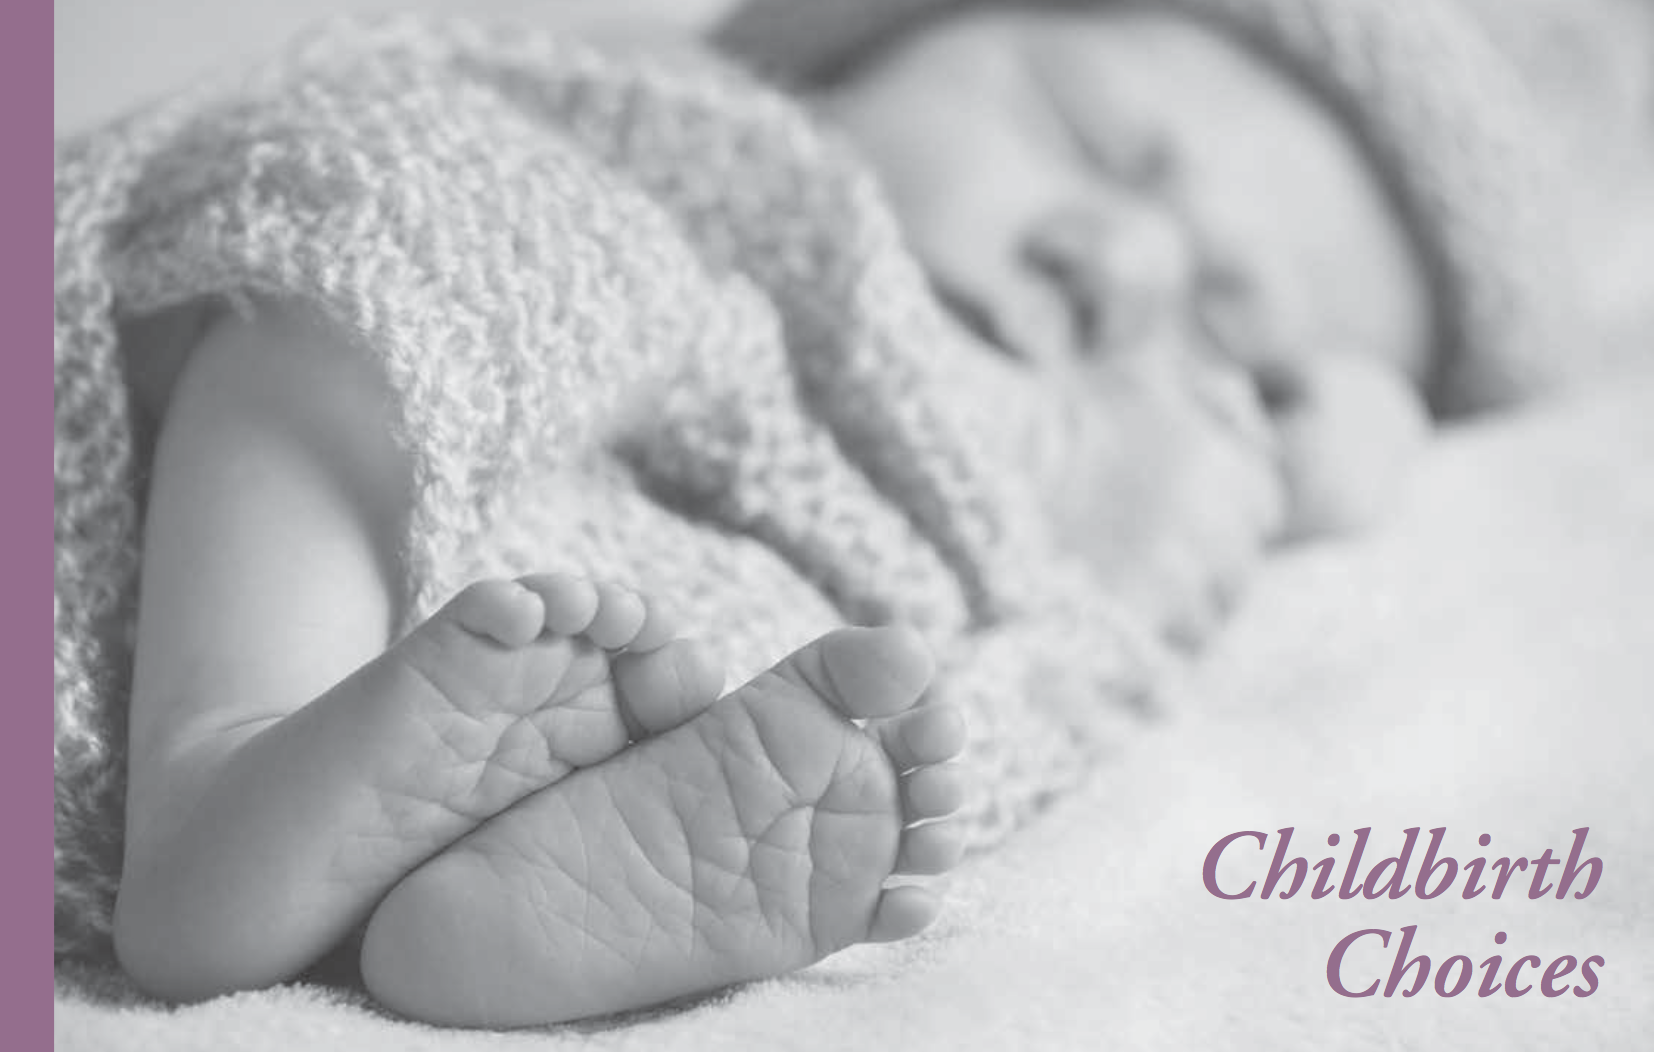 Childbirth Choices - Ashland Midwives discuss pregnancy and childbirth options